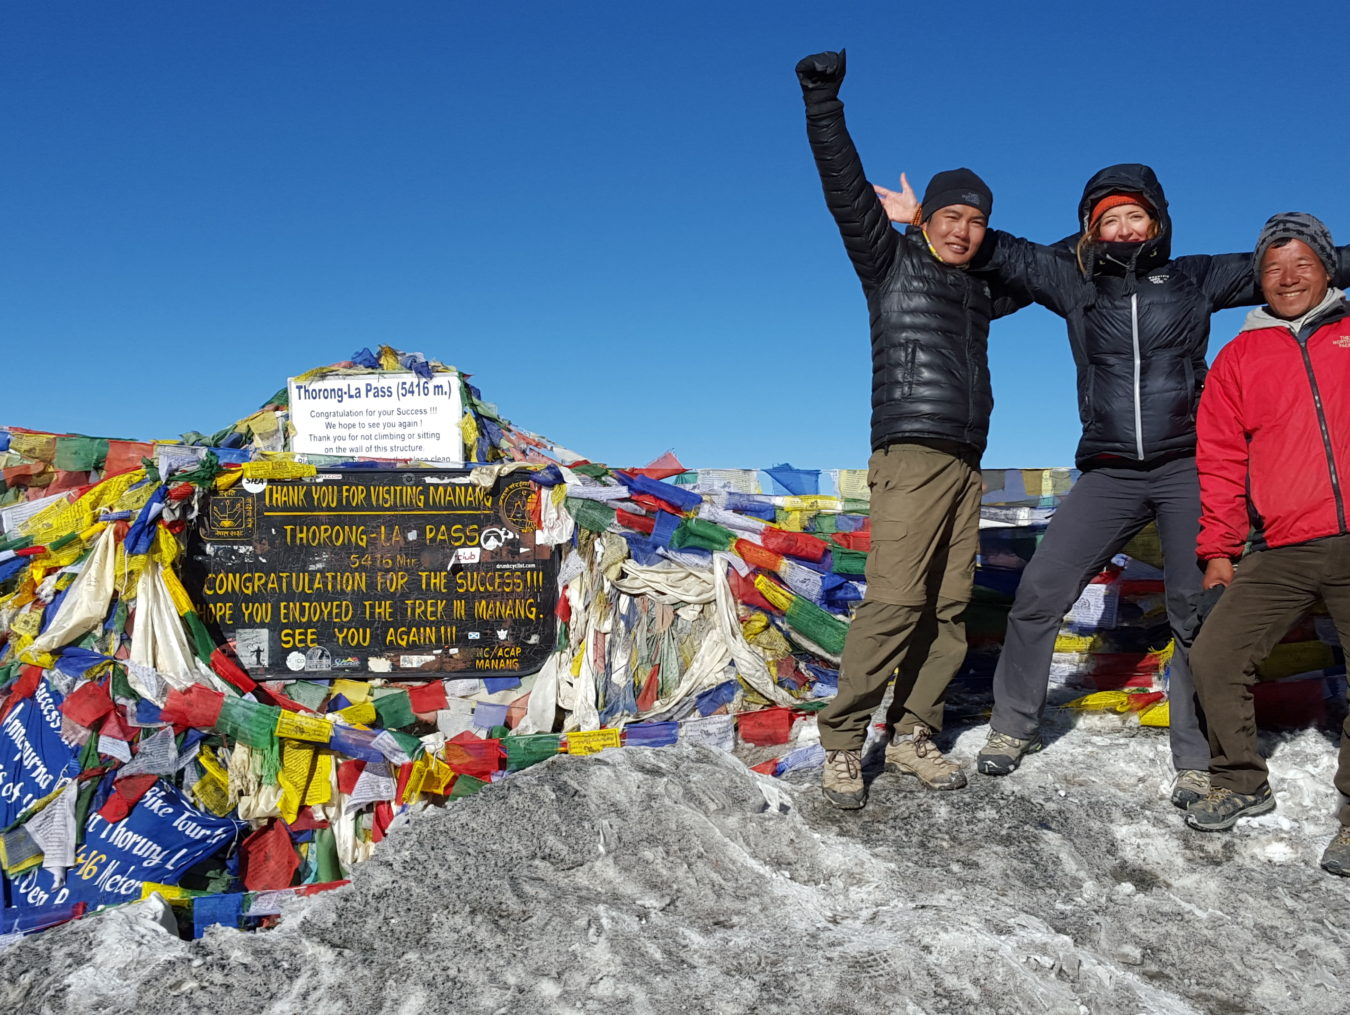 3 himalayan trekkers took a picture in thorong-la pass